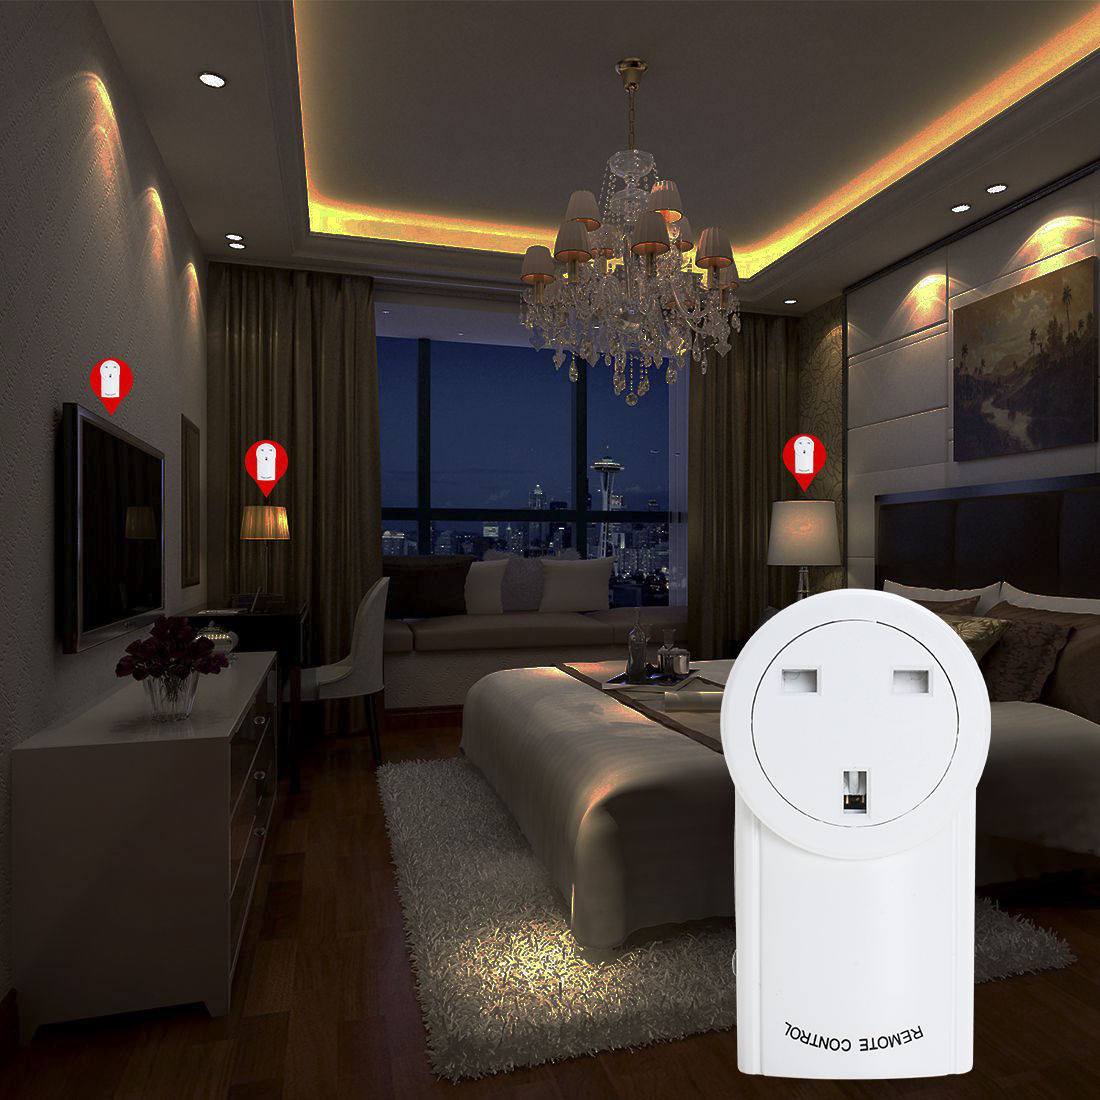 5Pcs AC230V 10A UK Plug Wireless Remote Control UK Socket Outlet w 1 Transmitter - image 5 de 7